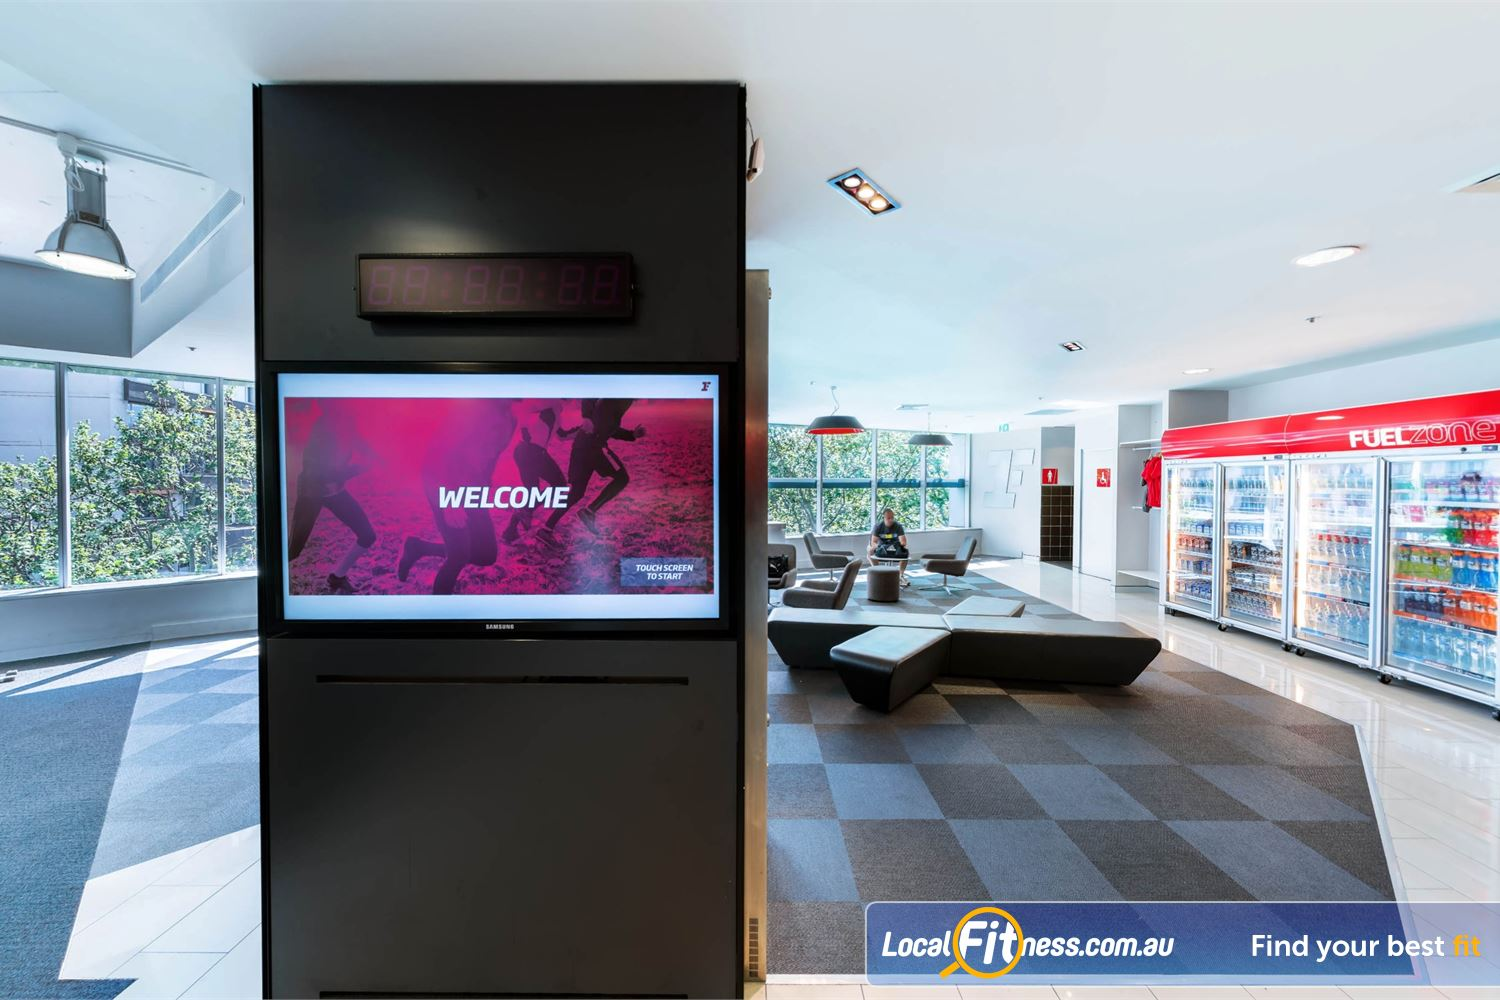 Fitness First Platinum Kings Cross Potts Point Exclusive members lounge with iPad Bar and WiFi.